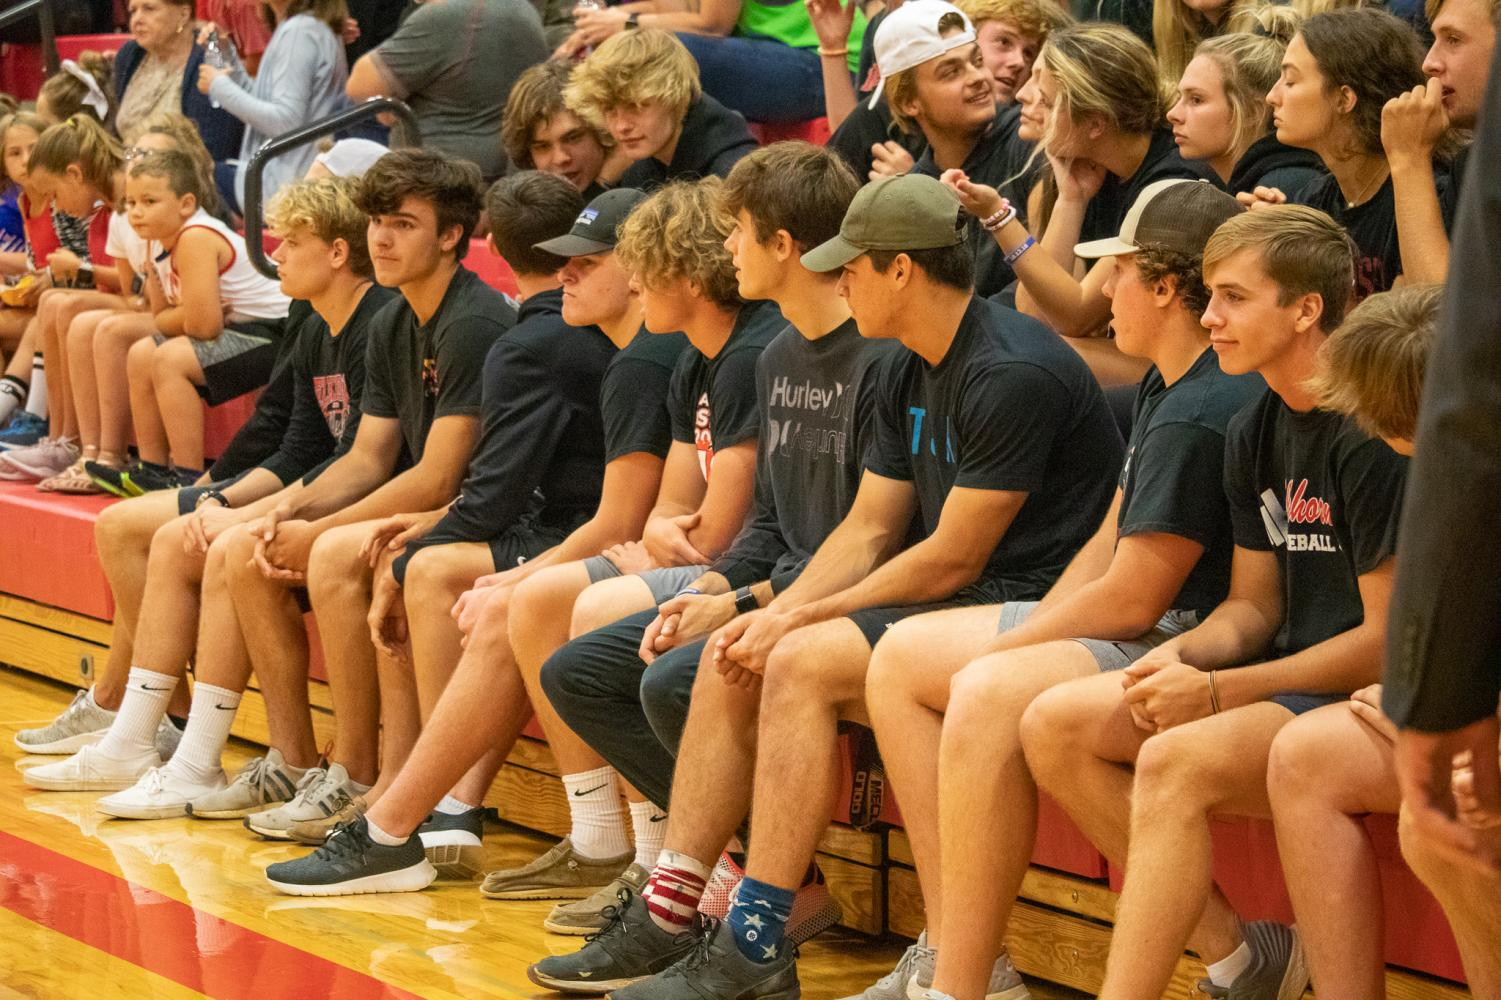 Elkhorn+seniors+and+the+rest+of+the+student+section+paying+close+attention+to+girls.